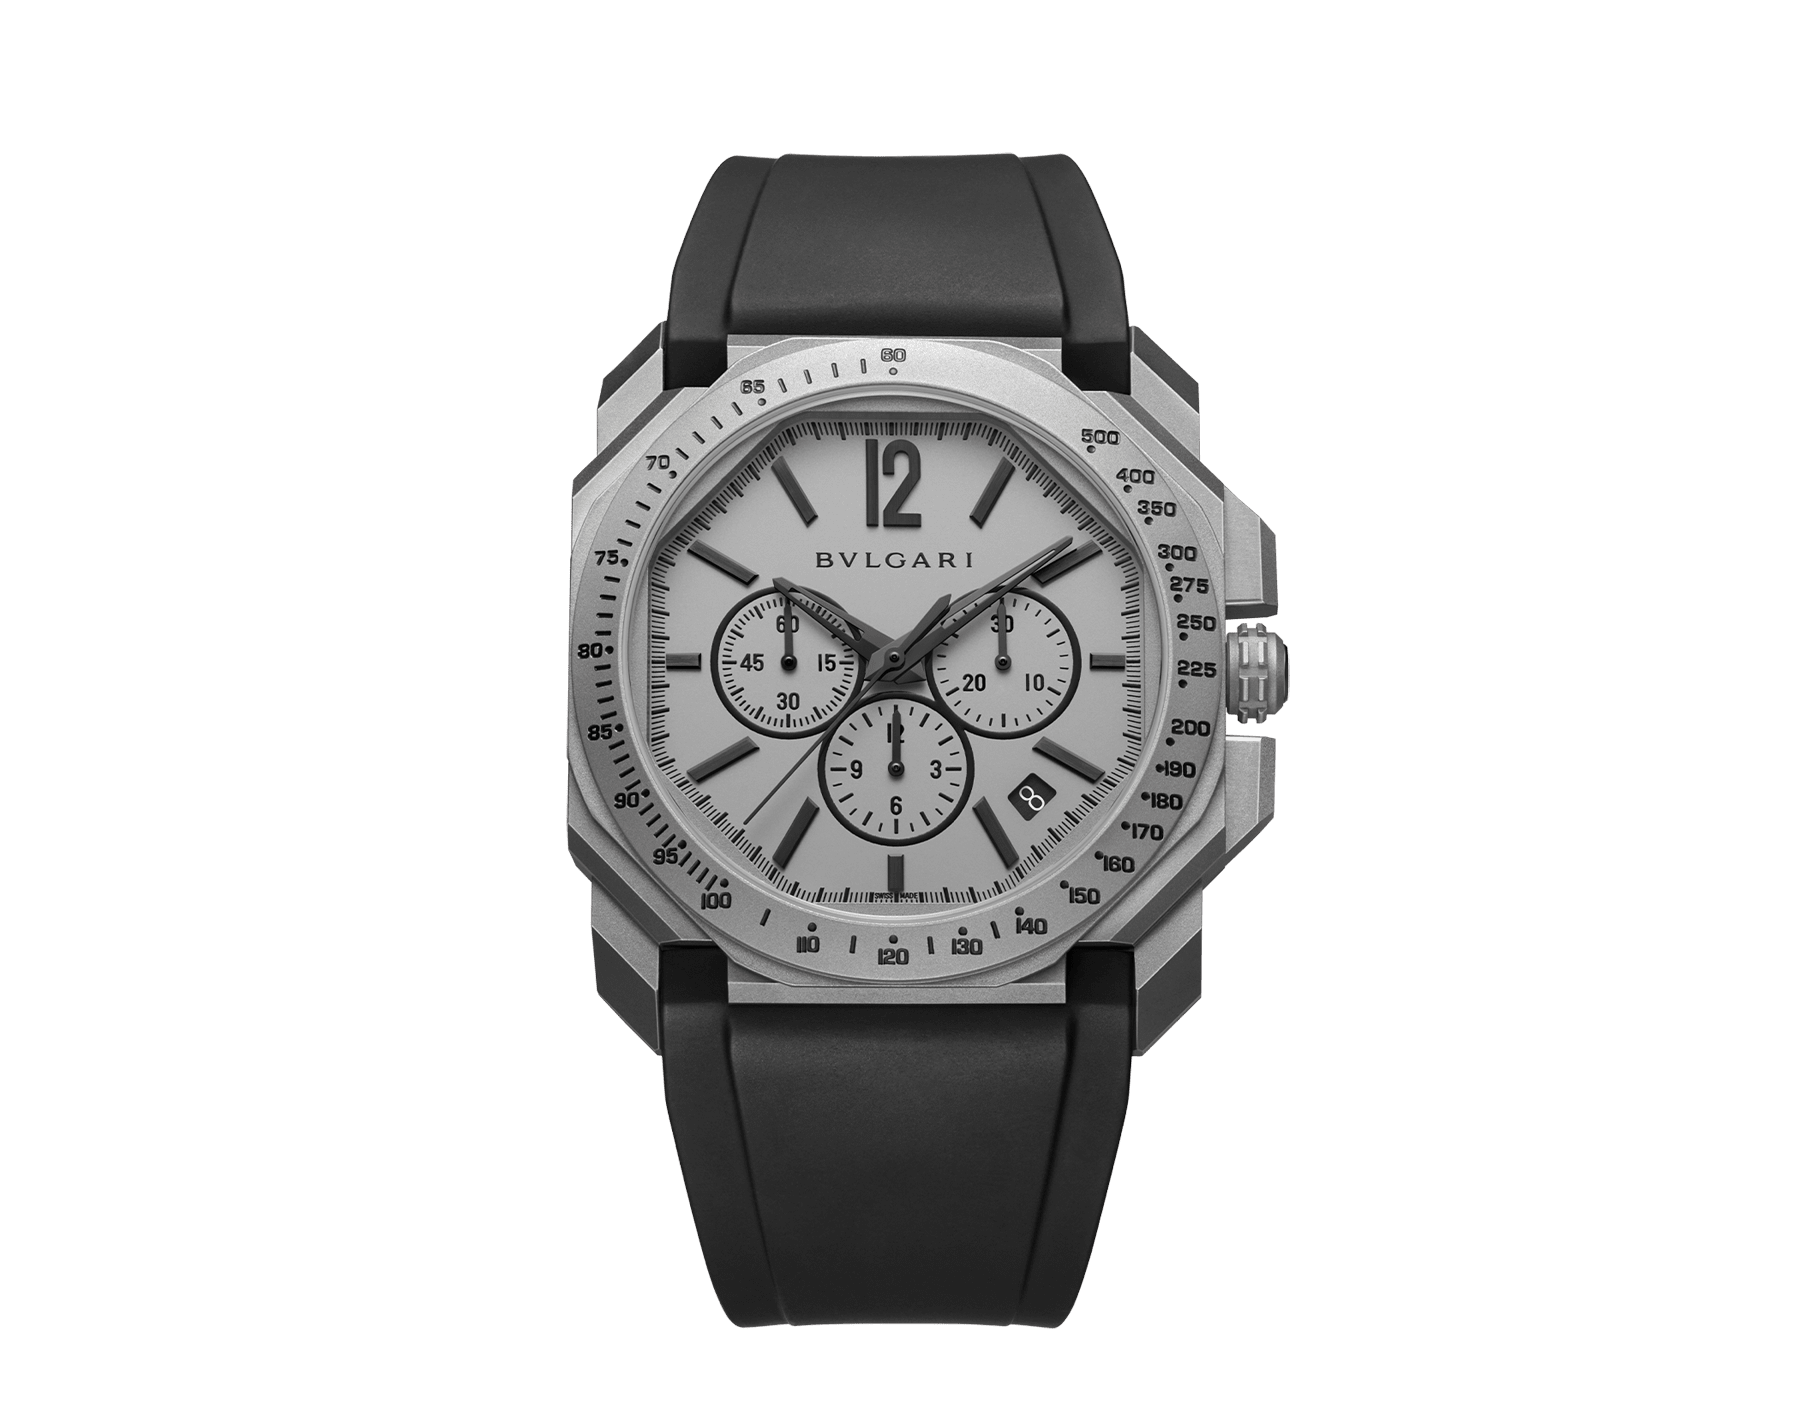 Octo L'Originale watch with mechanical manufacture movement, integrated high-frequency chronograph (5Hz), column wheel mechanism, silicon escapement, automatic winding and date, titanium case and dial, and black rubber bracelet 102859 image 1